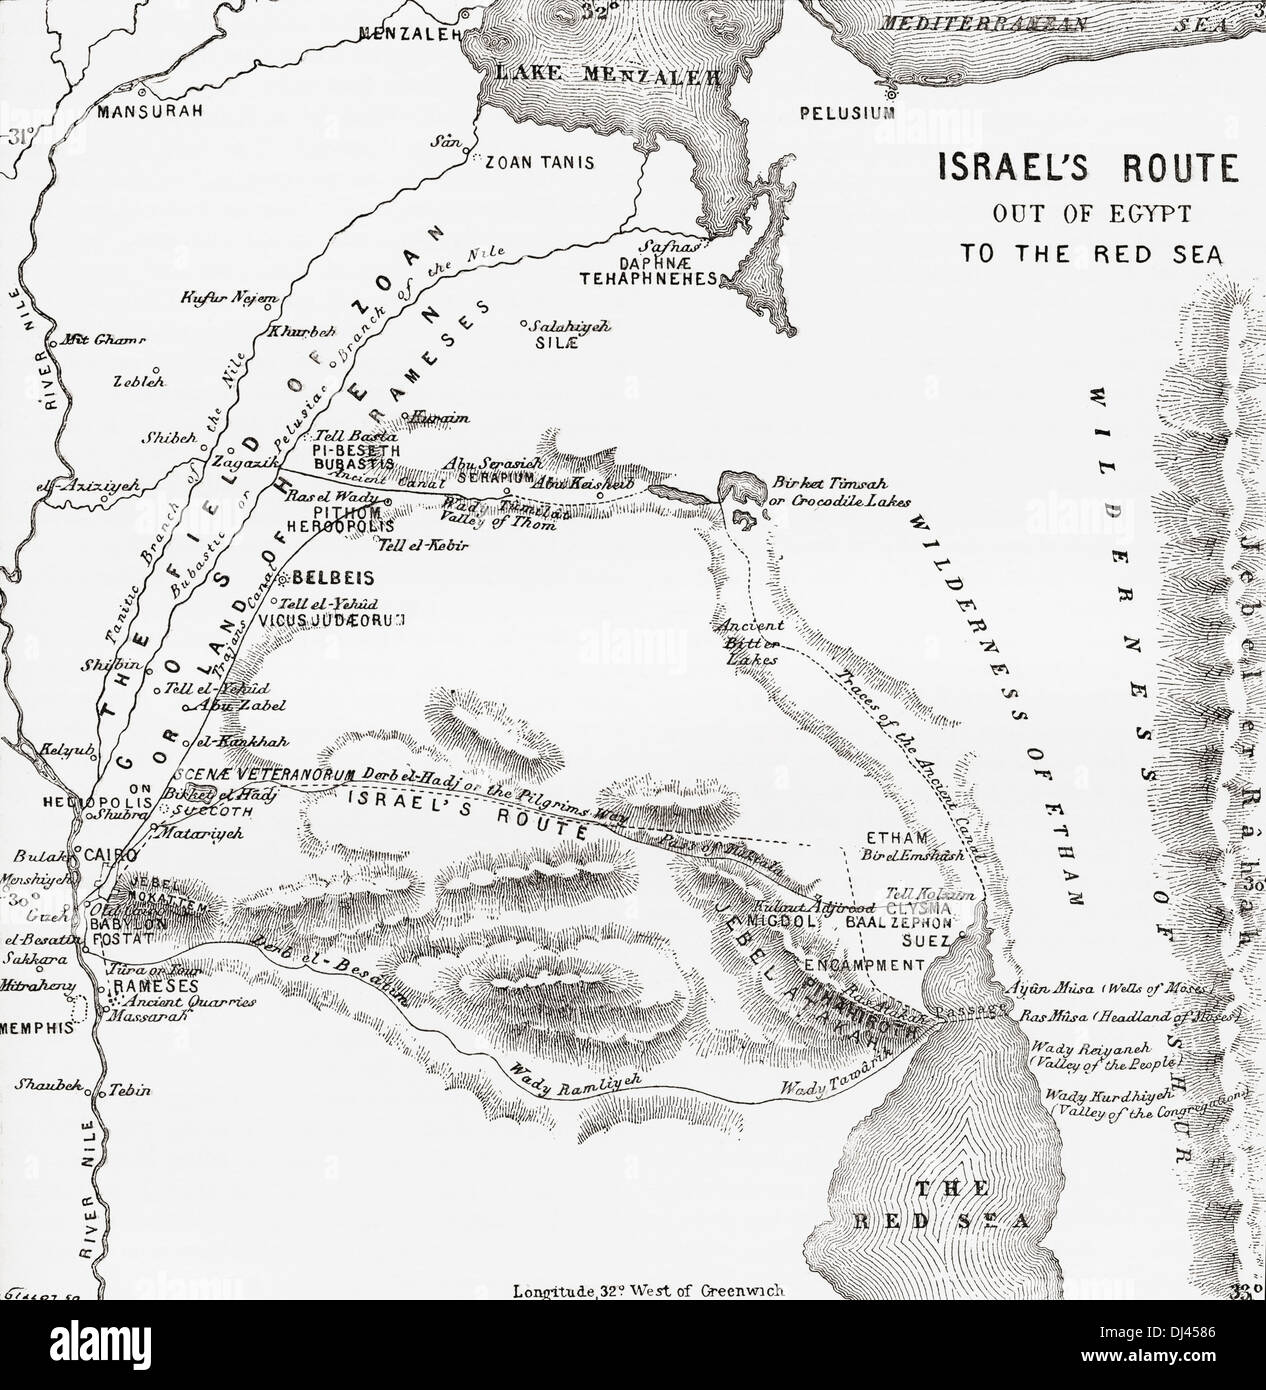 Map showing the Israelites route to the Red Sea during their exodus from Egypt. - Stock Image